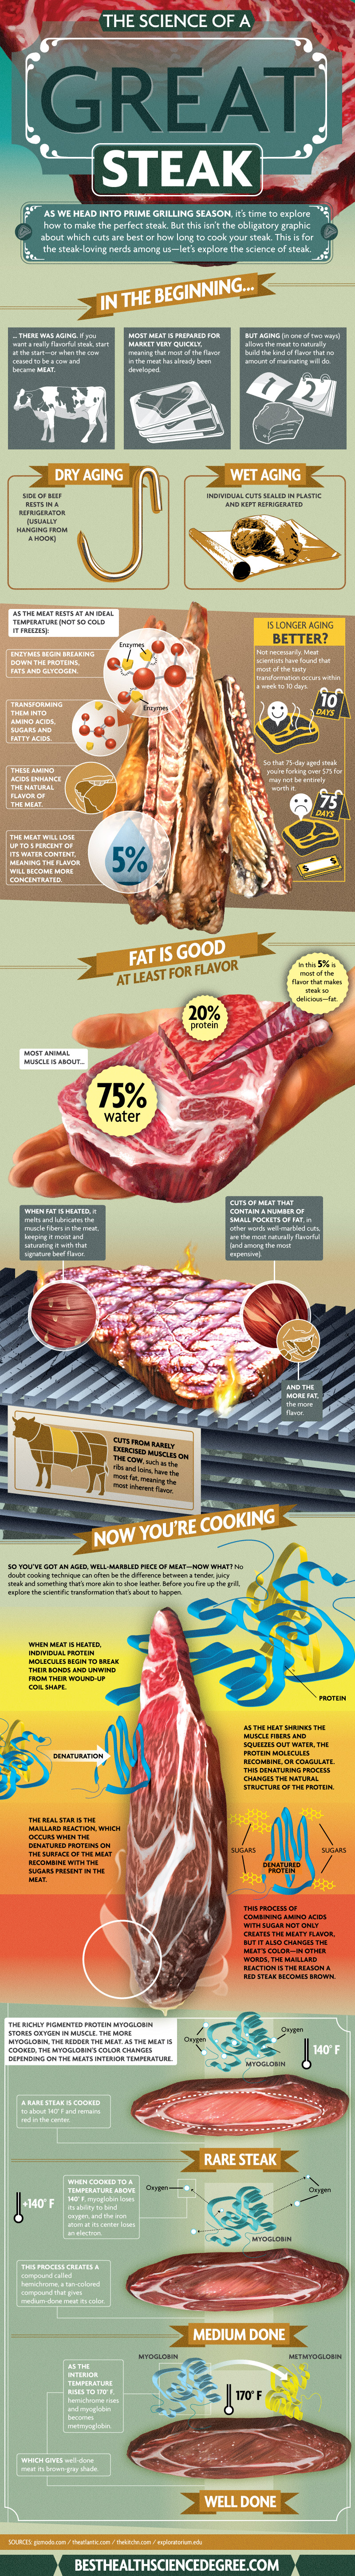 A Scientific Approach To Great Tasting Steaks On The Grill